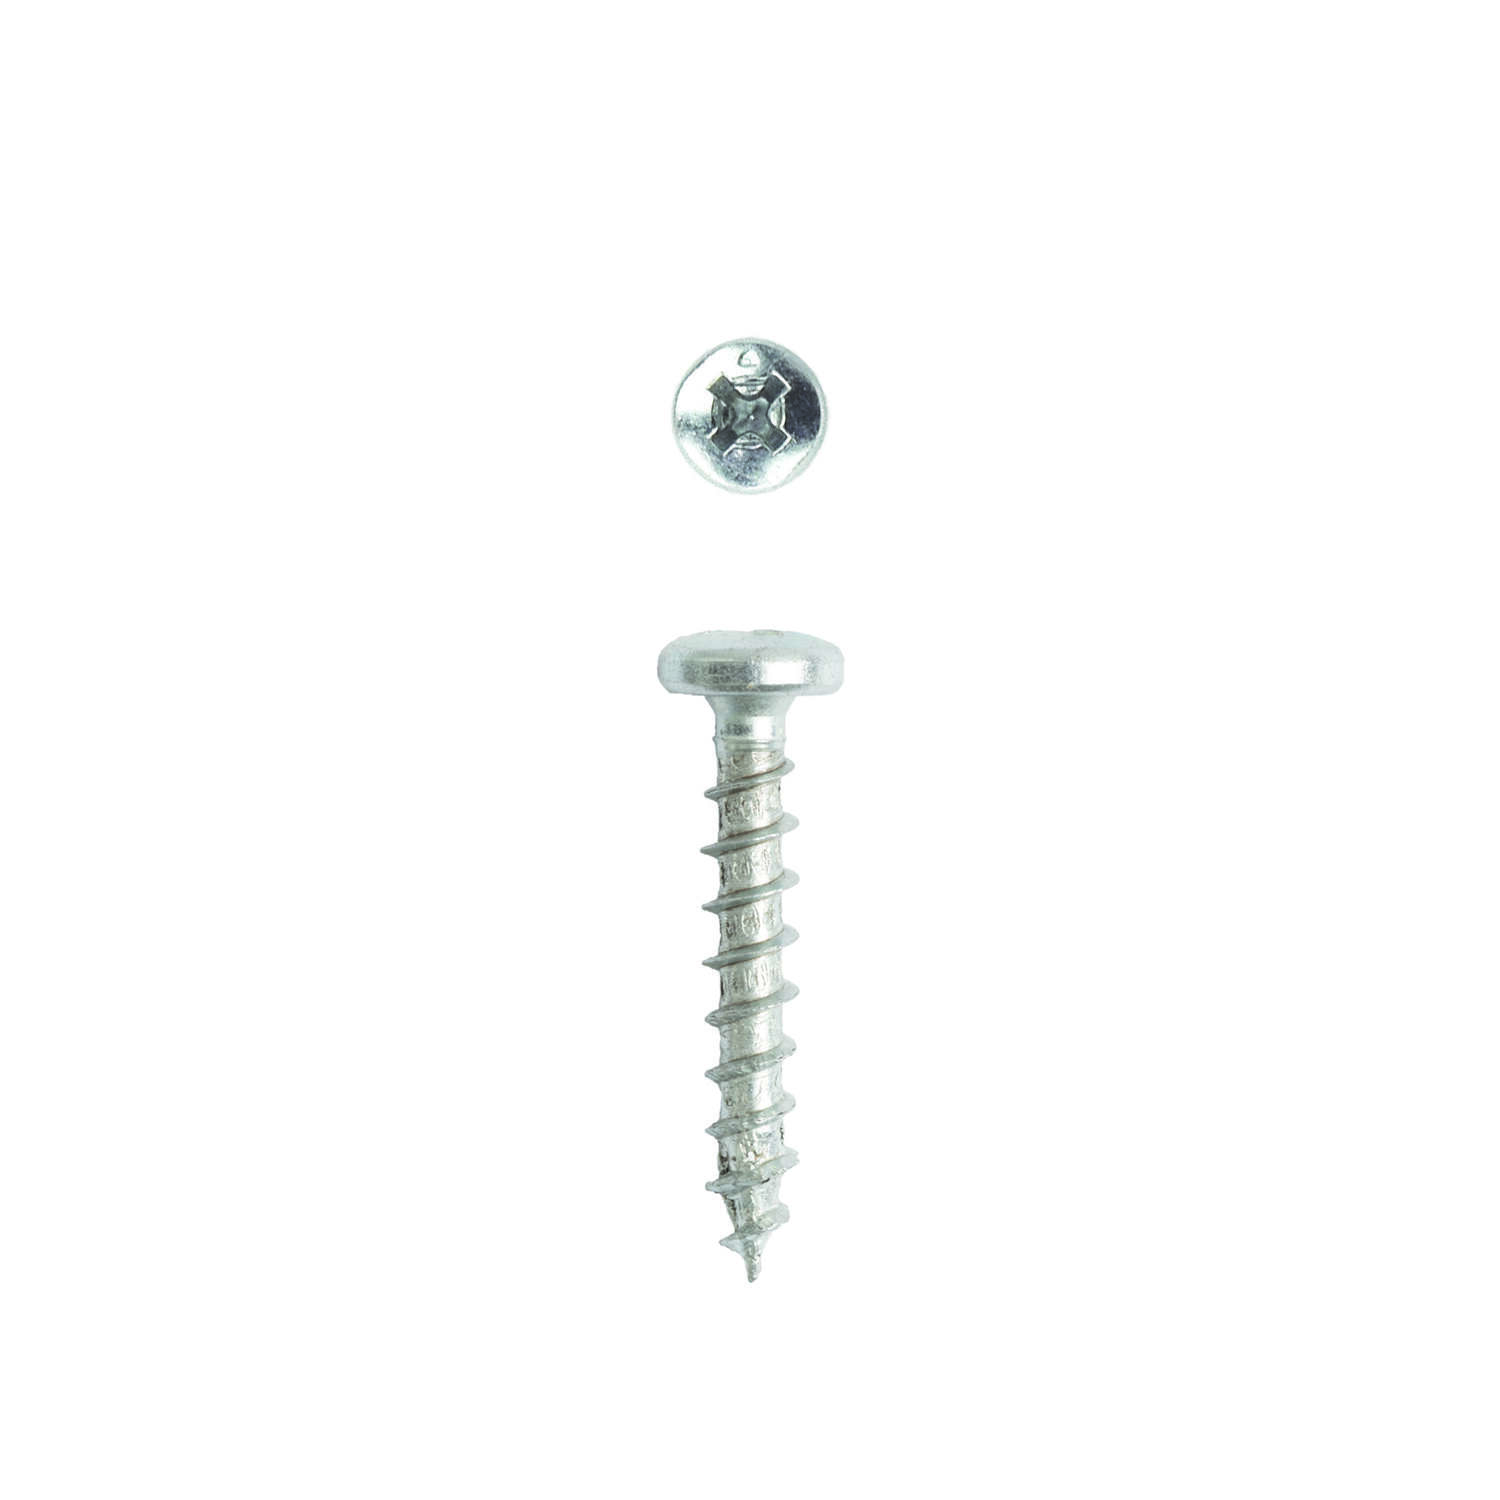 SPAX  No. 8   x 1 in. L Phillips/Square  Pan  Steel  Multi-Purpose Screws  30 pk Zinc-Plated